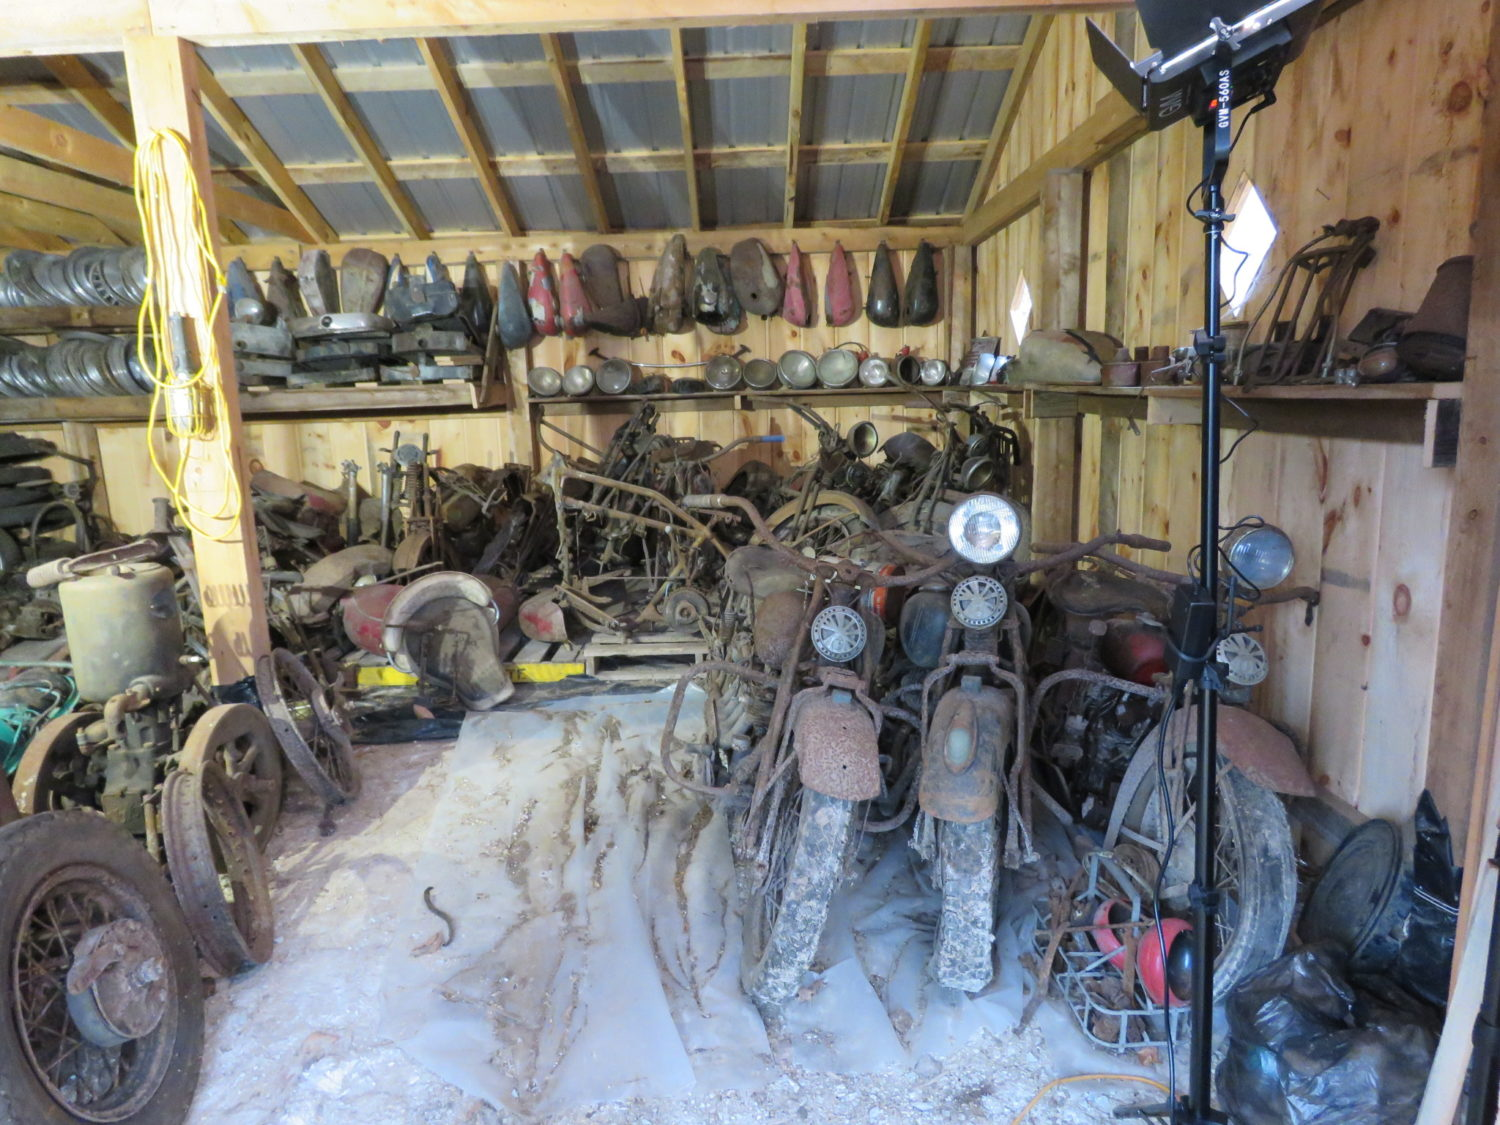 AMAZING Indian Motorcycle Hoard, Race Cars, Collector Car, Collectibles & More!  - image 2